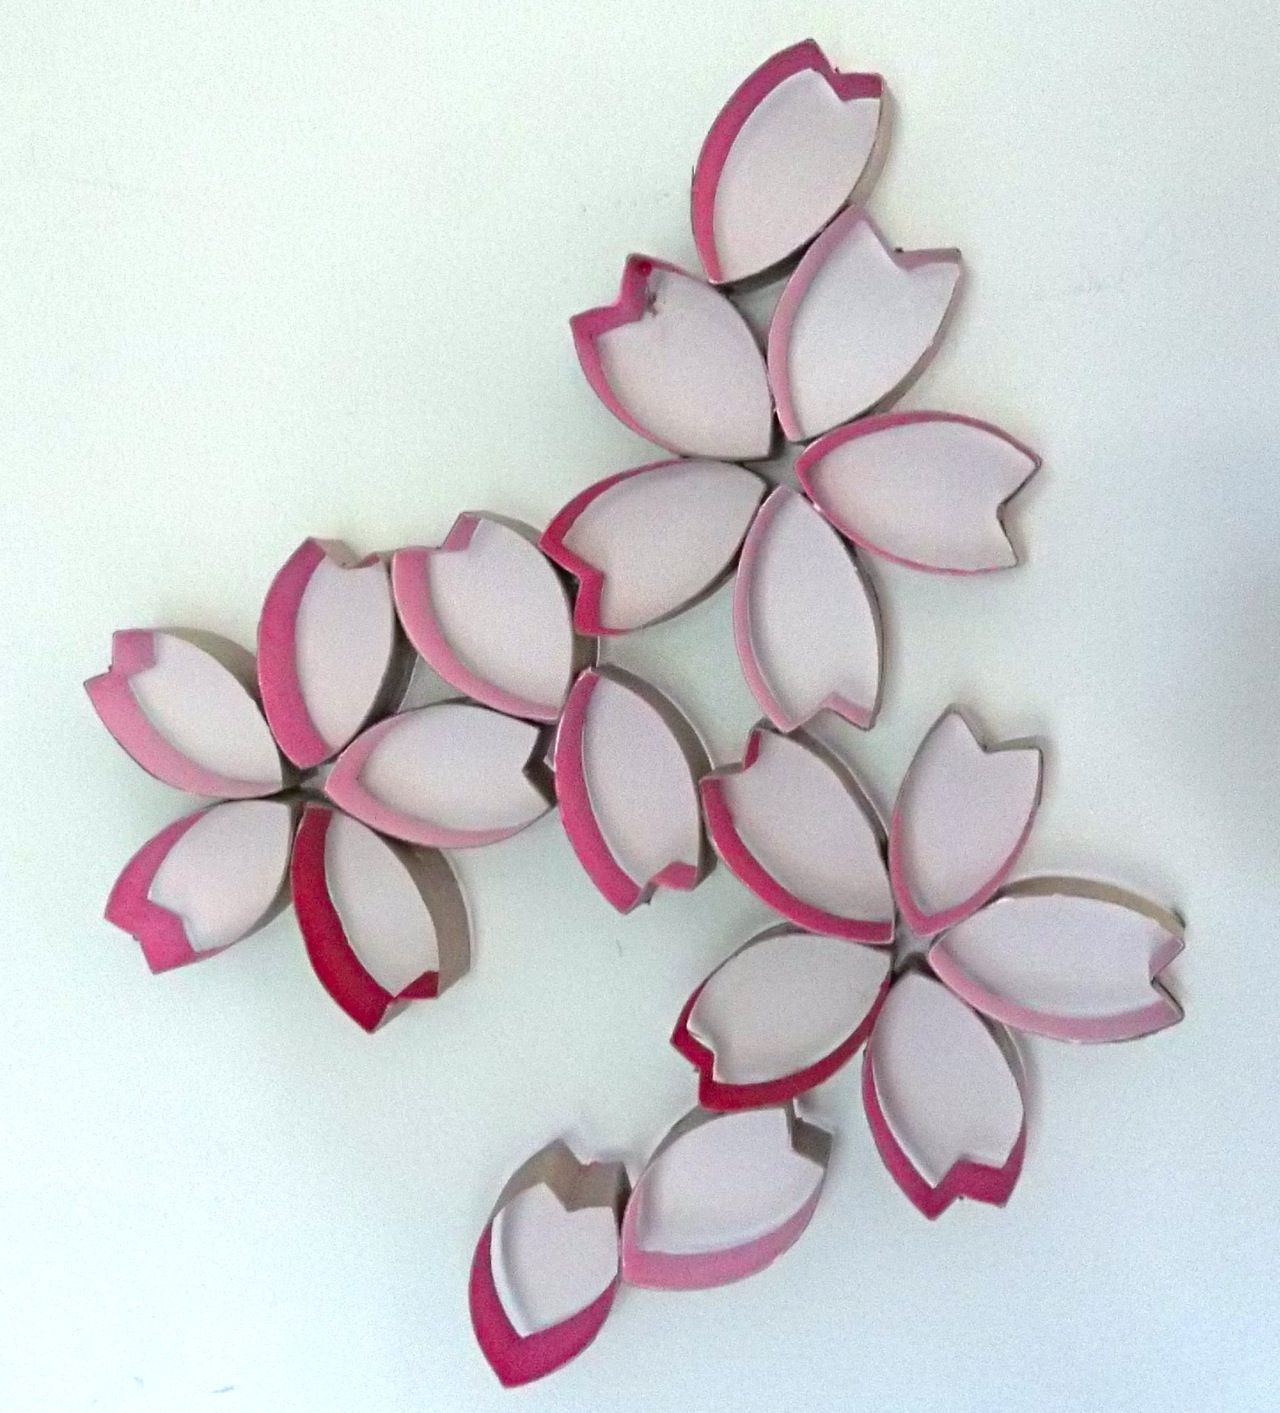 Toilet Paper Roll Art Amazing Crafts You Can Make With Toilet Paper Rolls Toilet Paper